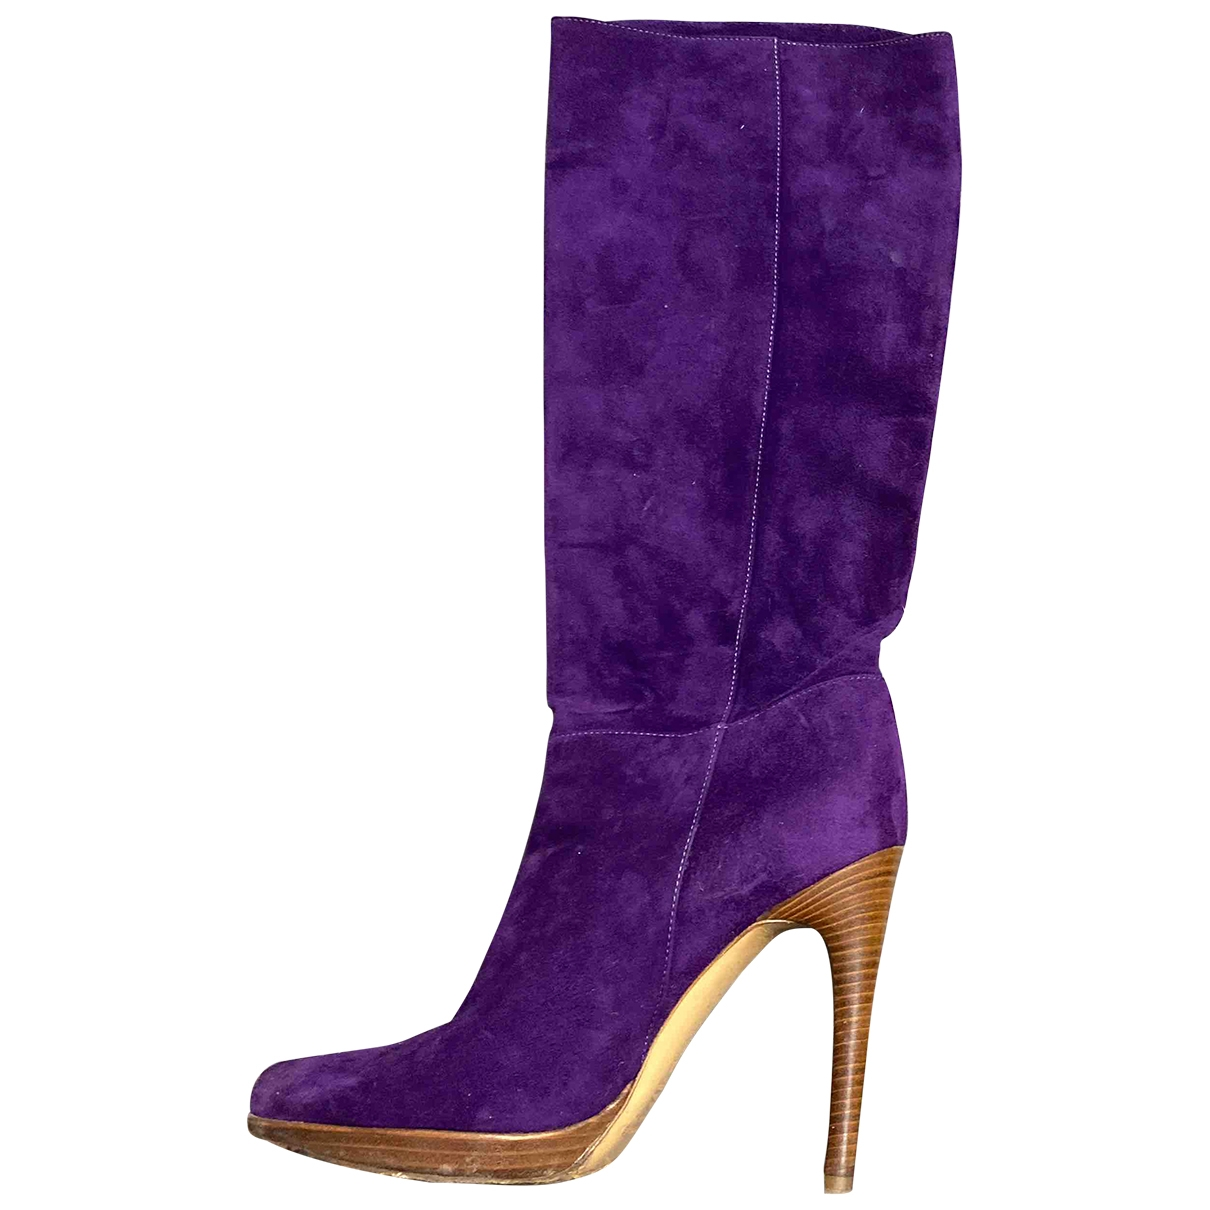 Casadei \N Purple Leather Boots for Women 36 EU